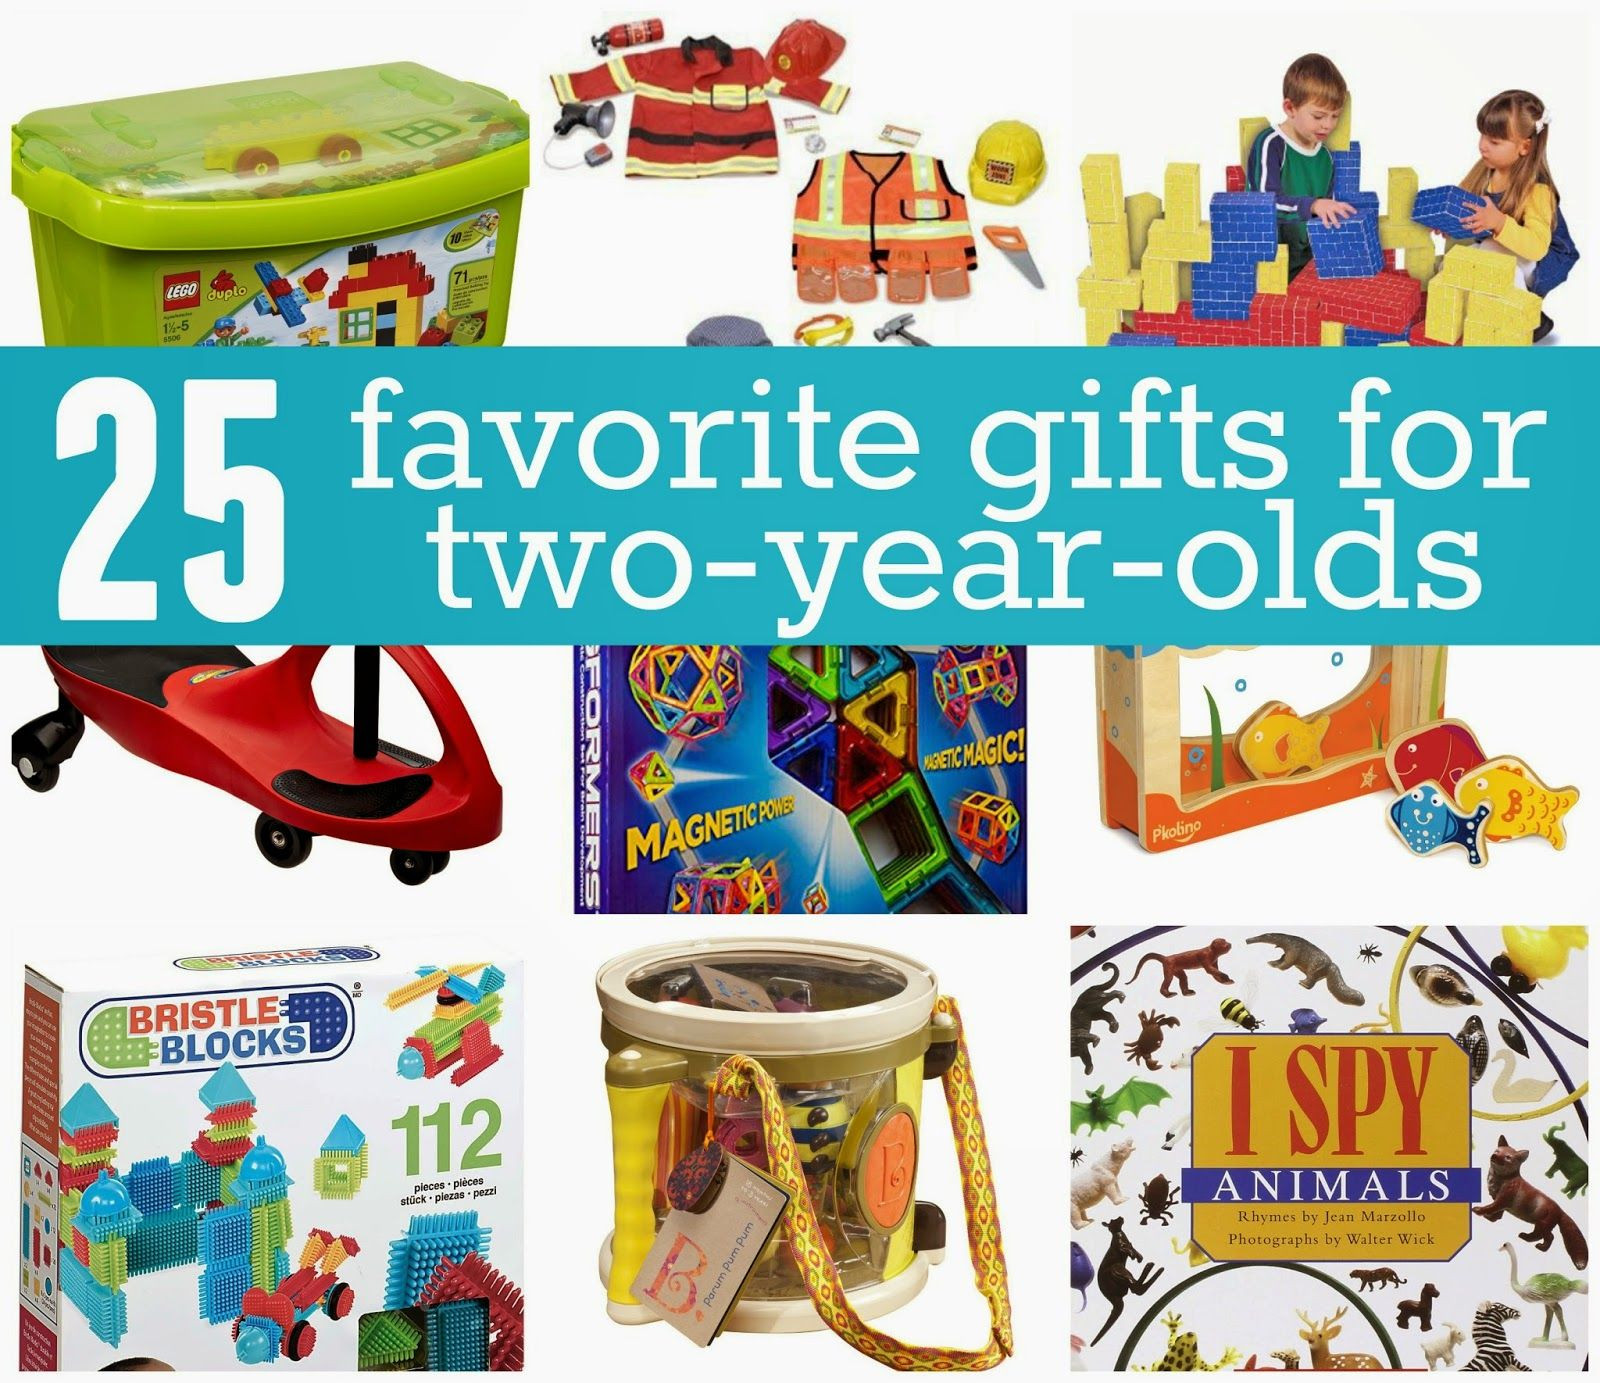 Christmas Gift Ideas For 2 Year Old Baby Girl  Favorite Gifts for 2 Year Olds